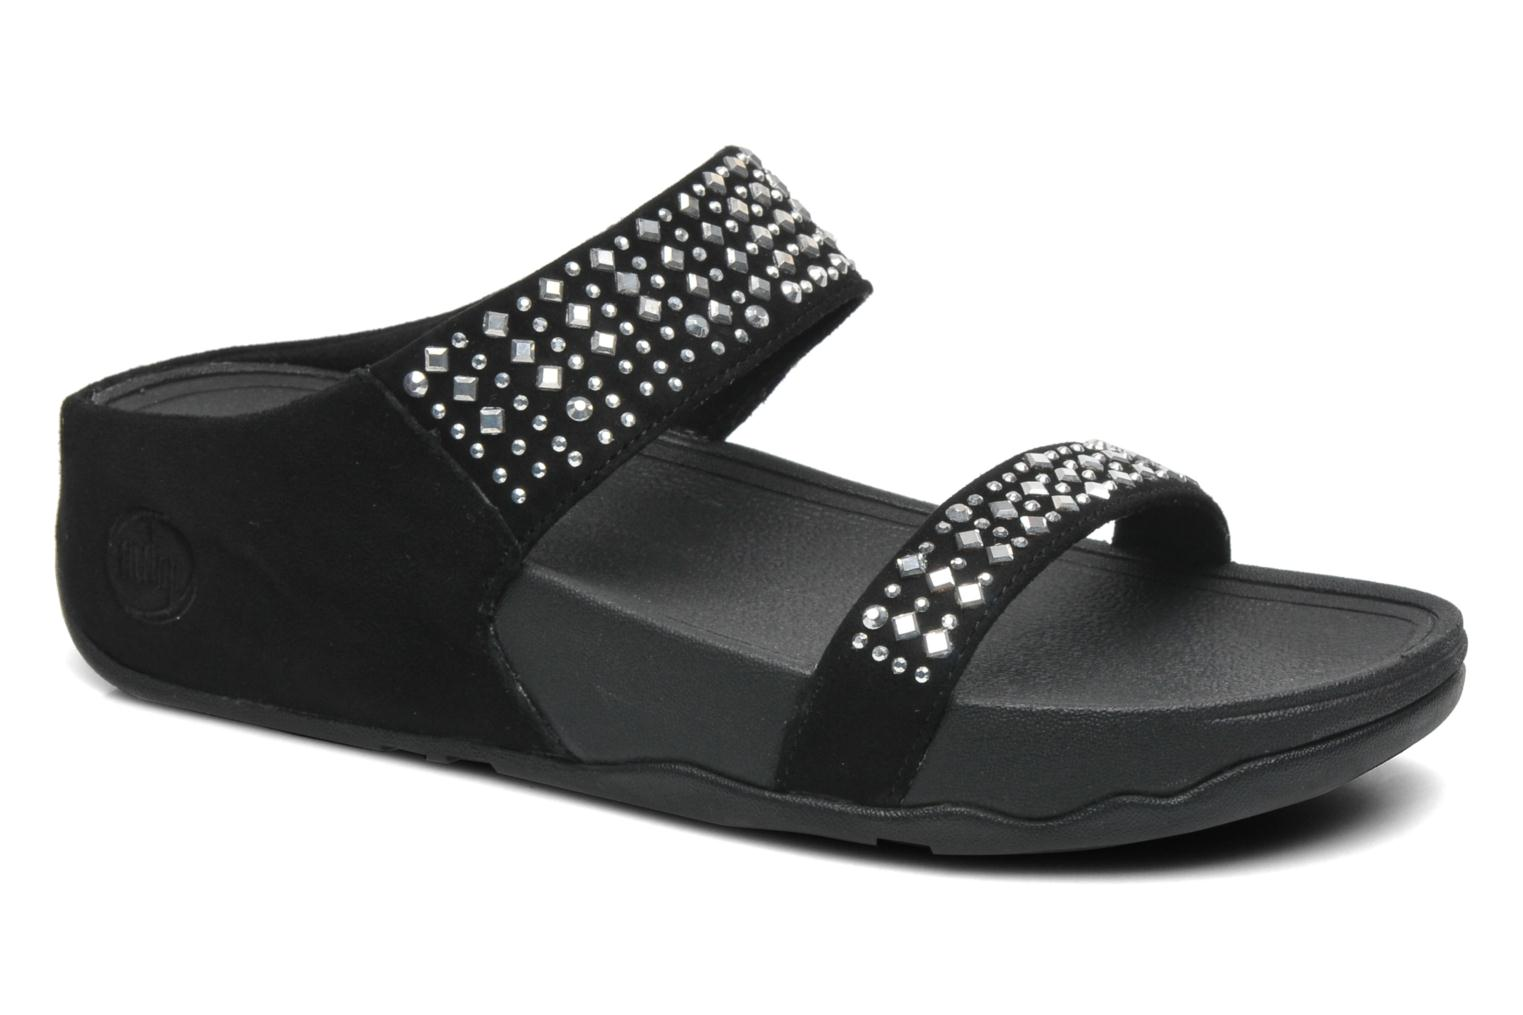 Novy Slide Black